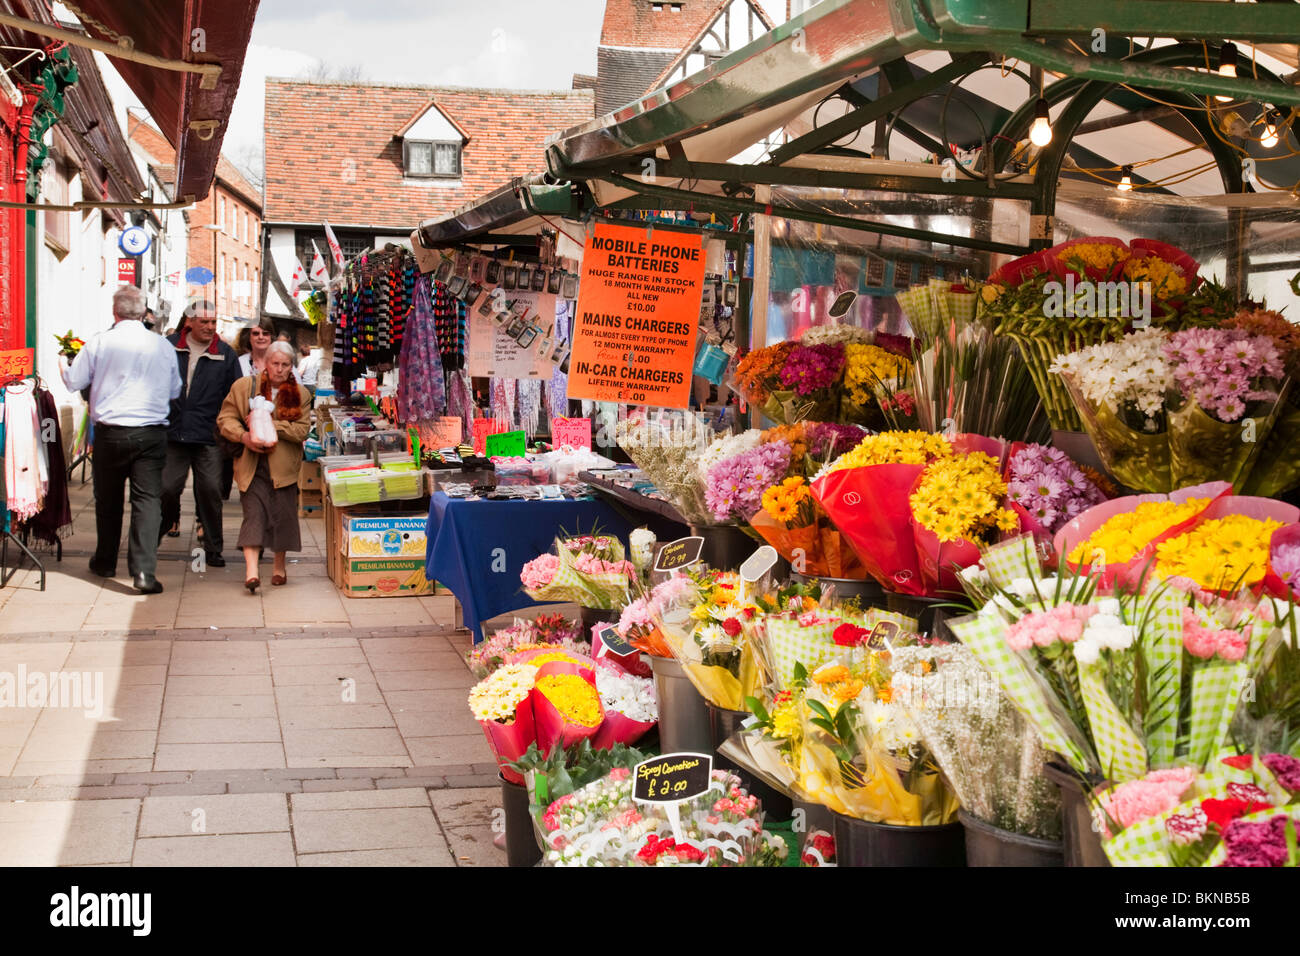 Bustling Newgate Market in the centre of York city, Yorkshire, Uk - Stock Image